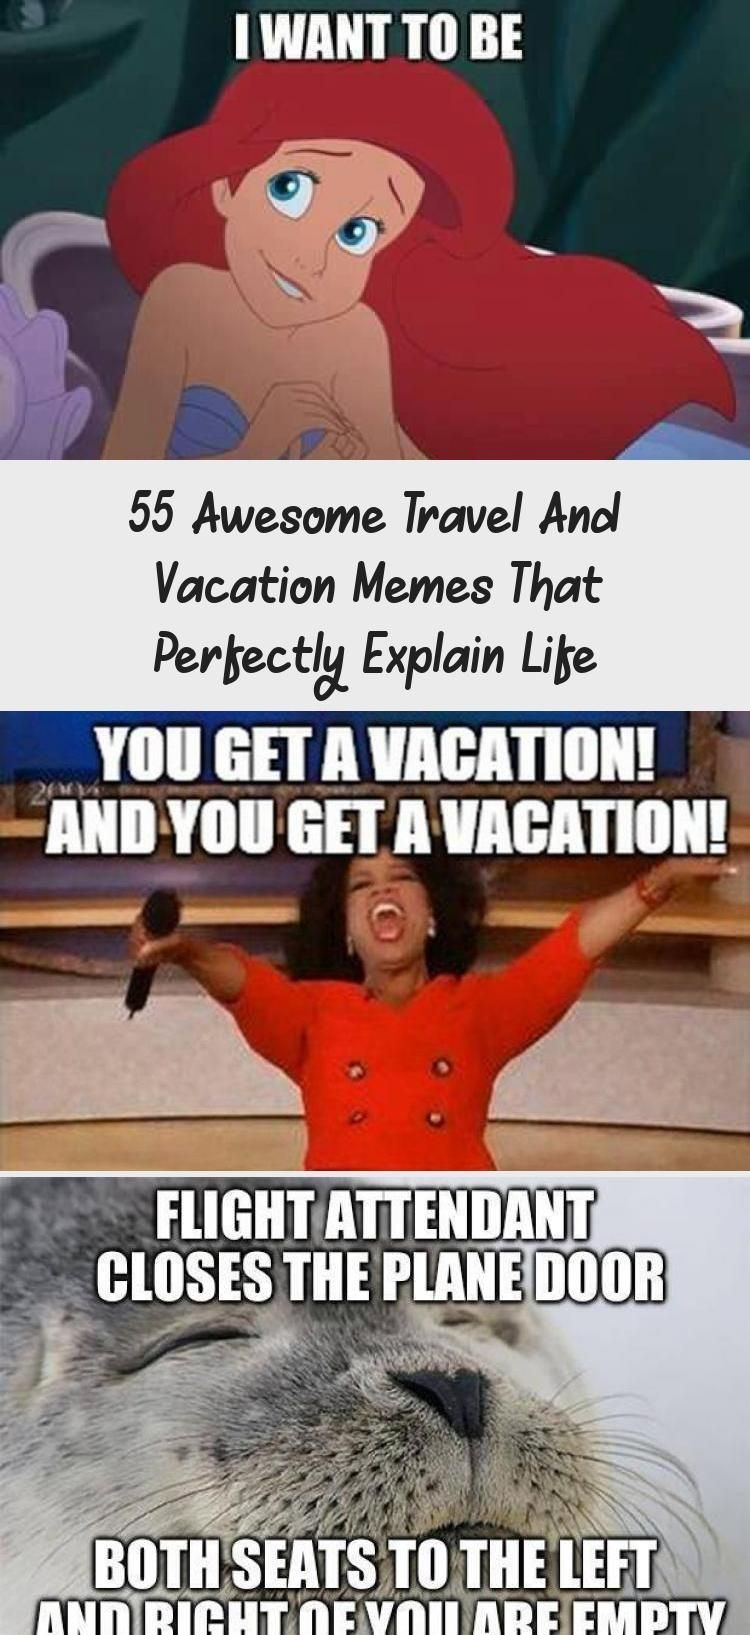 55 Awesome Travel And Vacation Memes That Perfectly